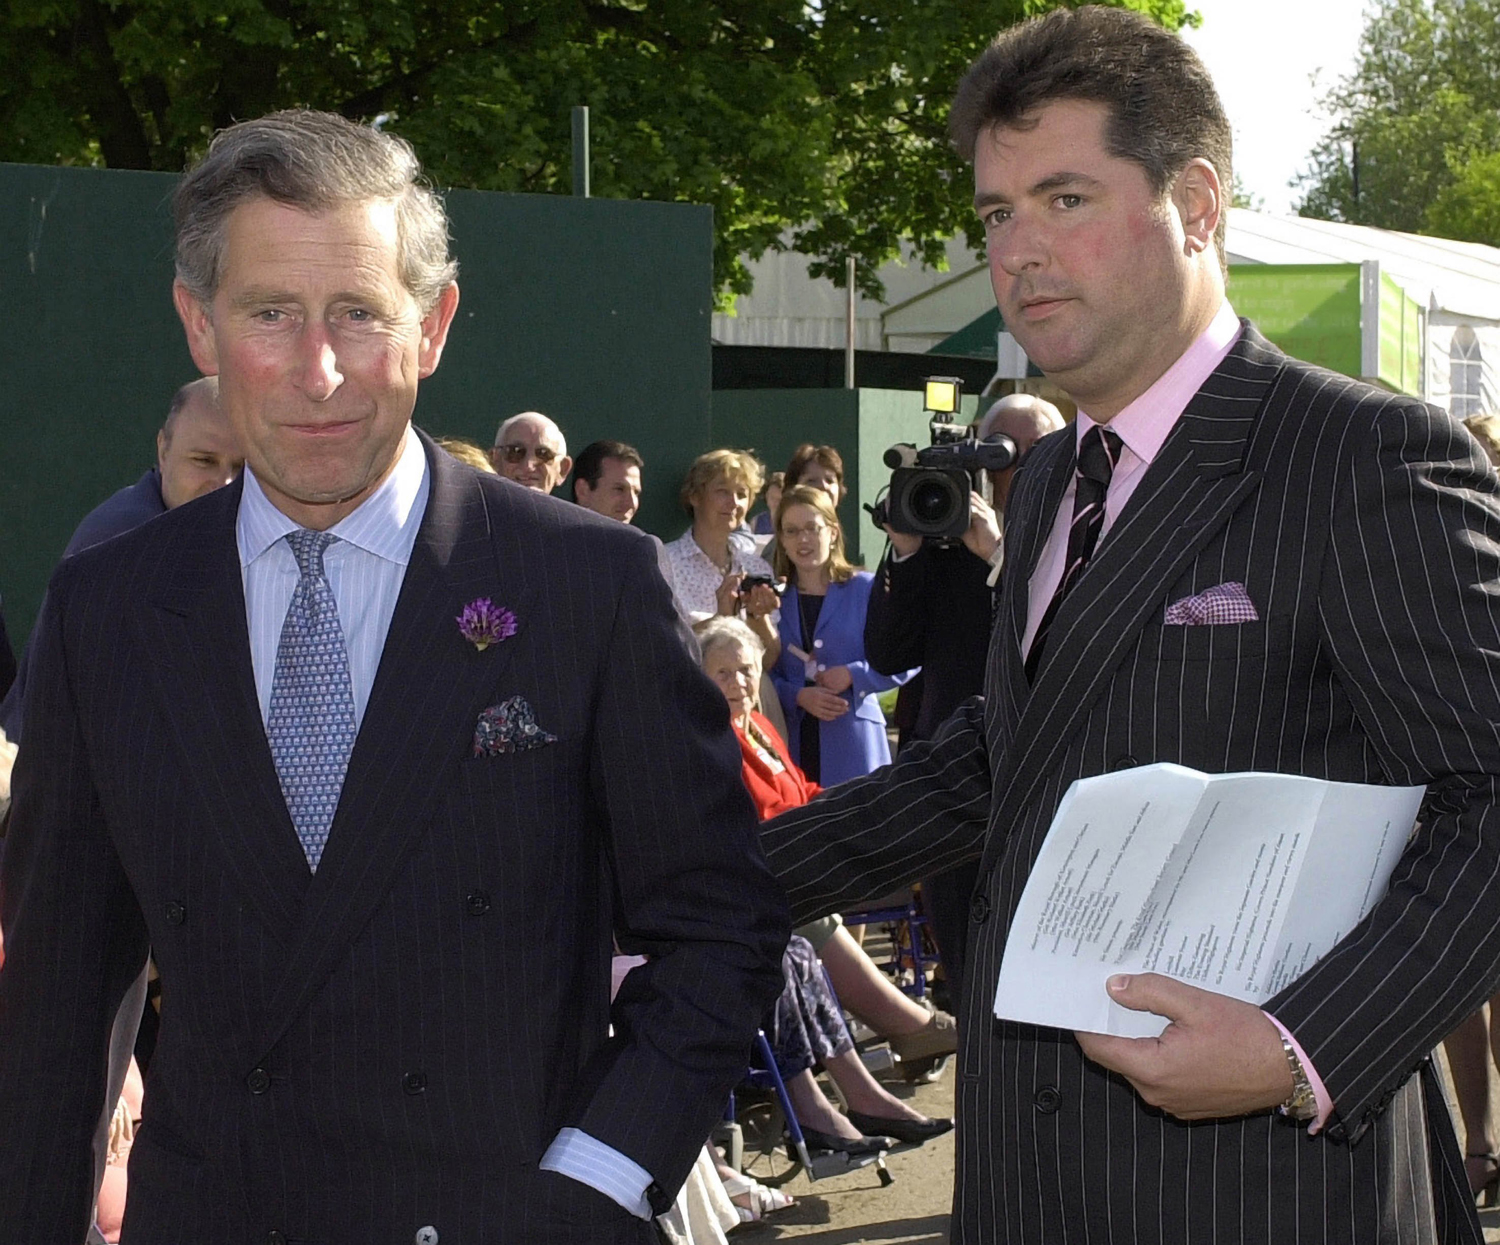 Prince Charles with his valet Michael Fawcett